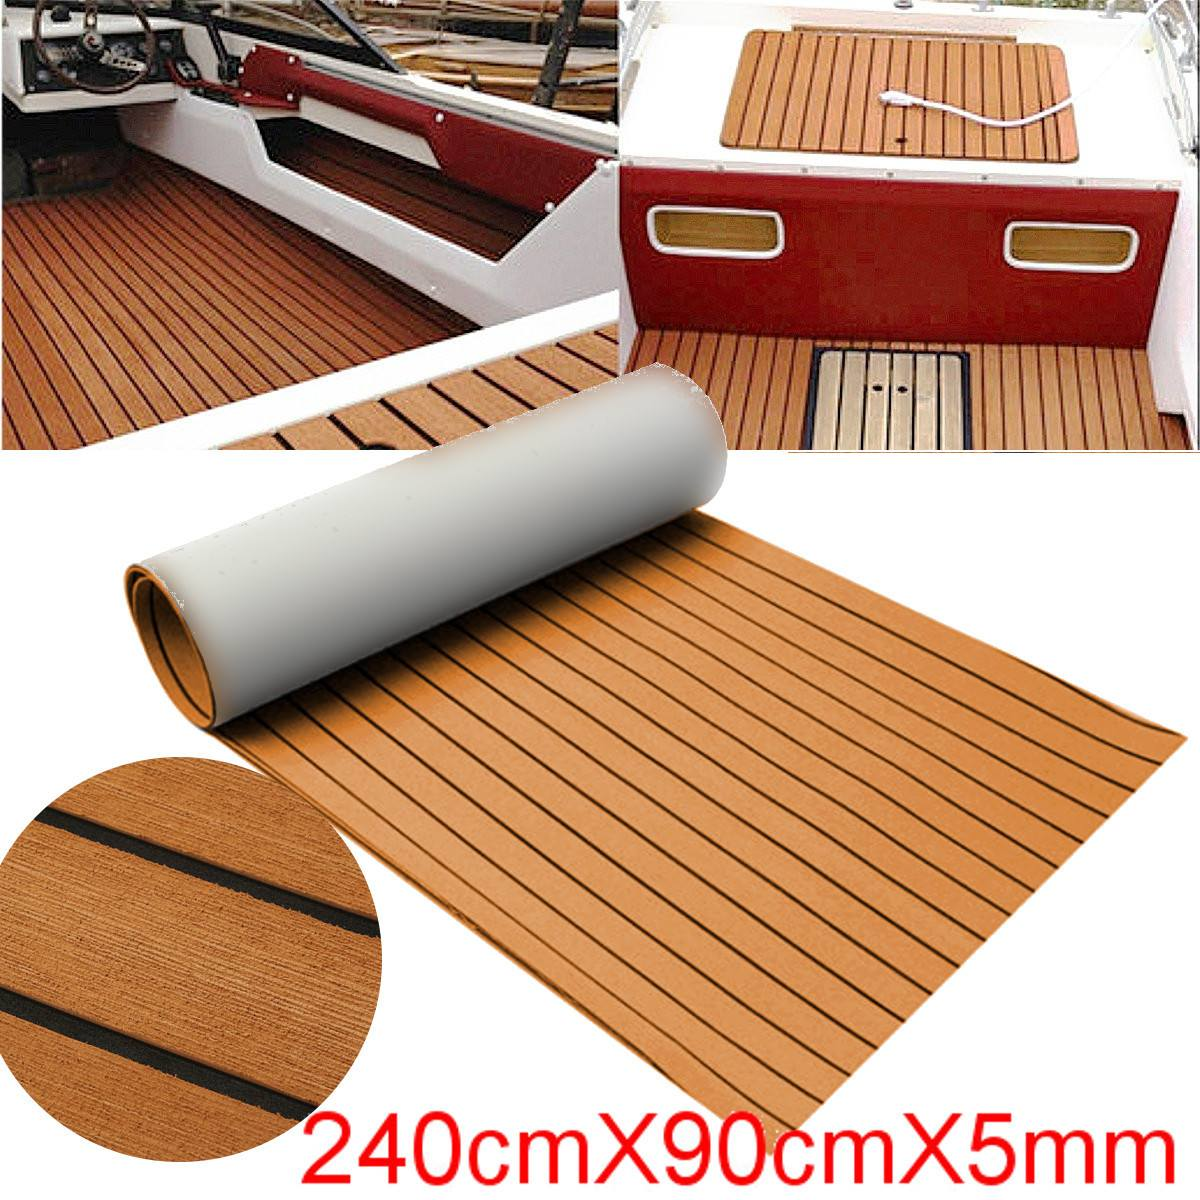 Self-Adhesive 900x2400x5mm Foam Teak Decking EVA Foam Marine Flooring Faux Boat Decking Sheet Accessories Marine Brown Black